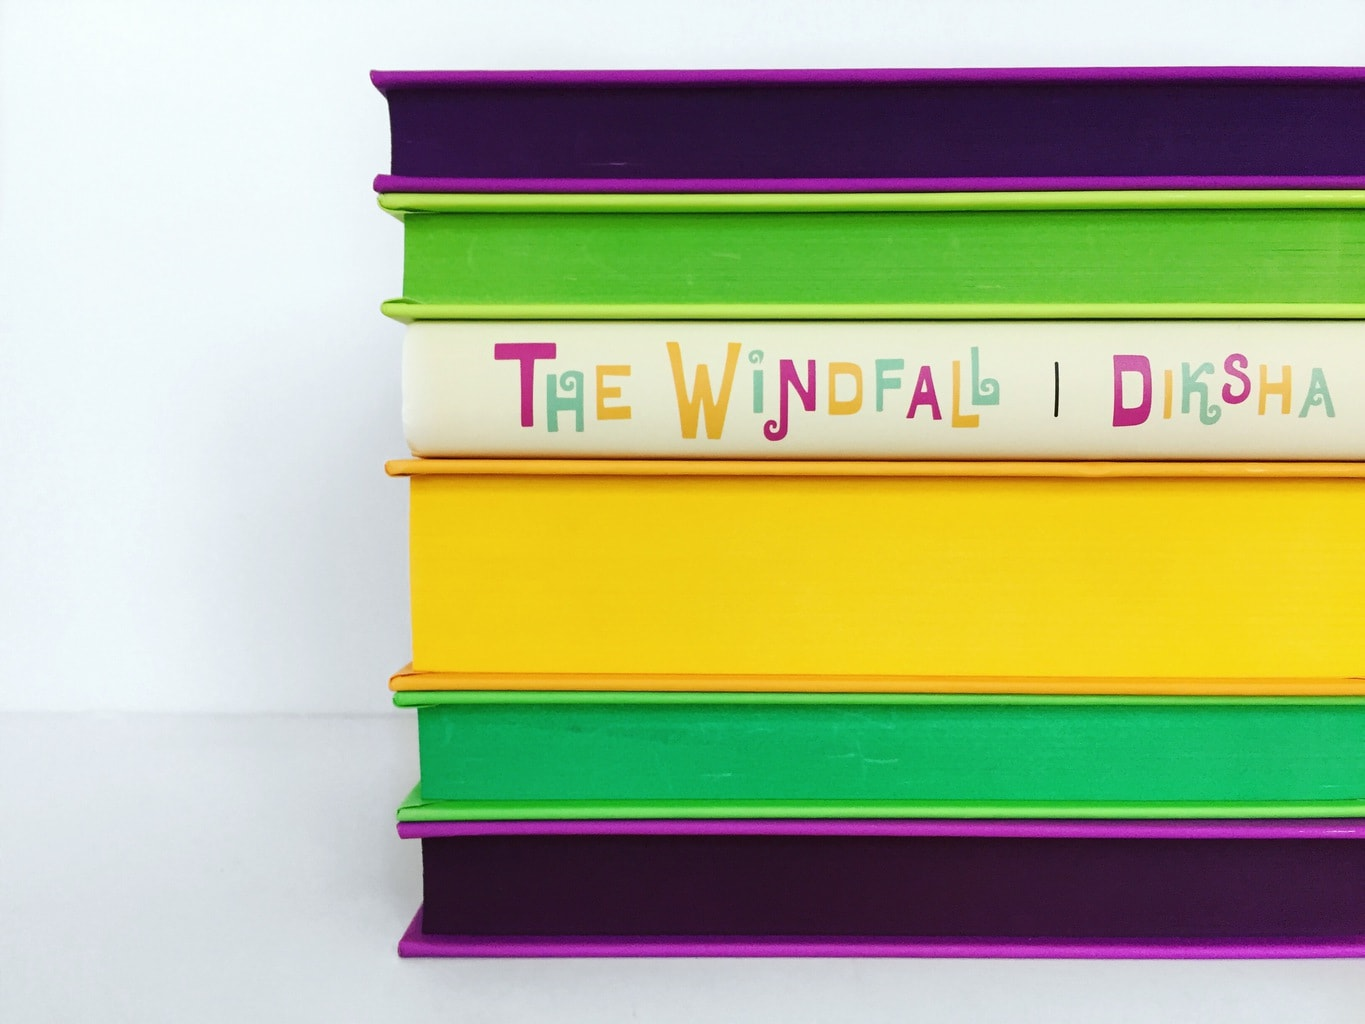 the windfall review